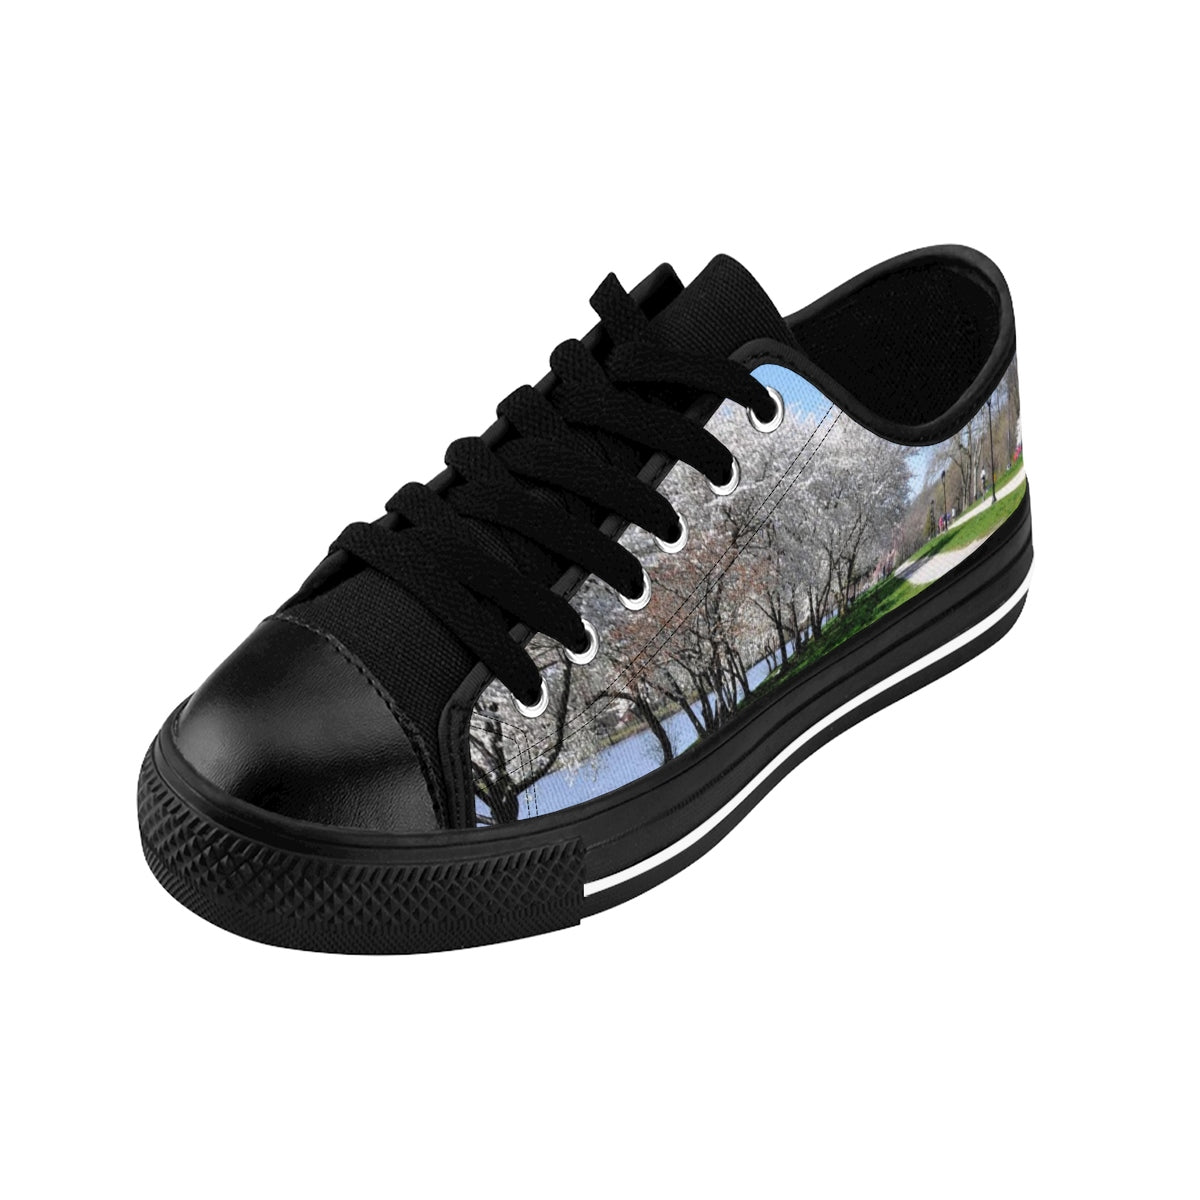 Kelly Drive Philly Men's Sneakers (order up one size, run small)